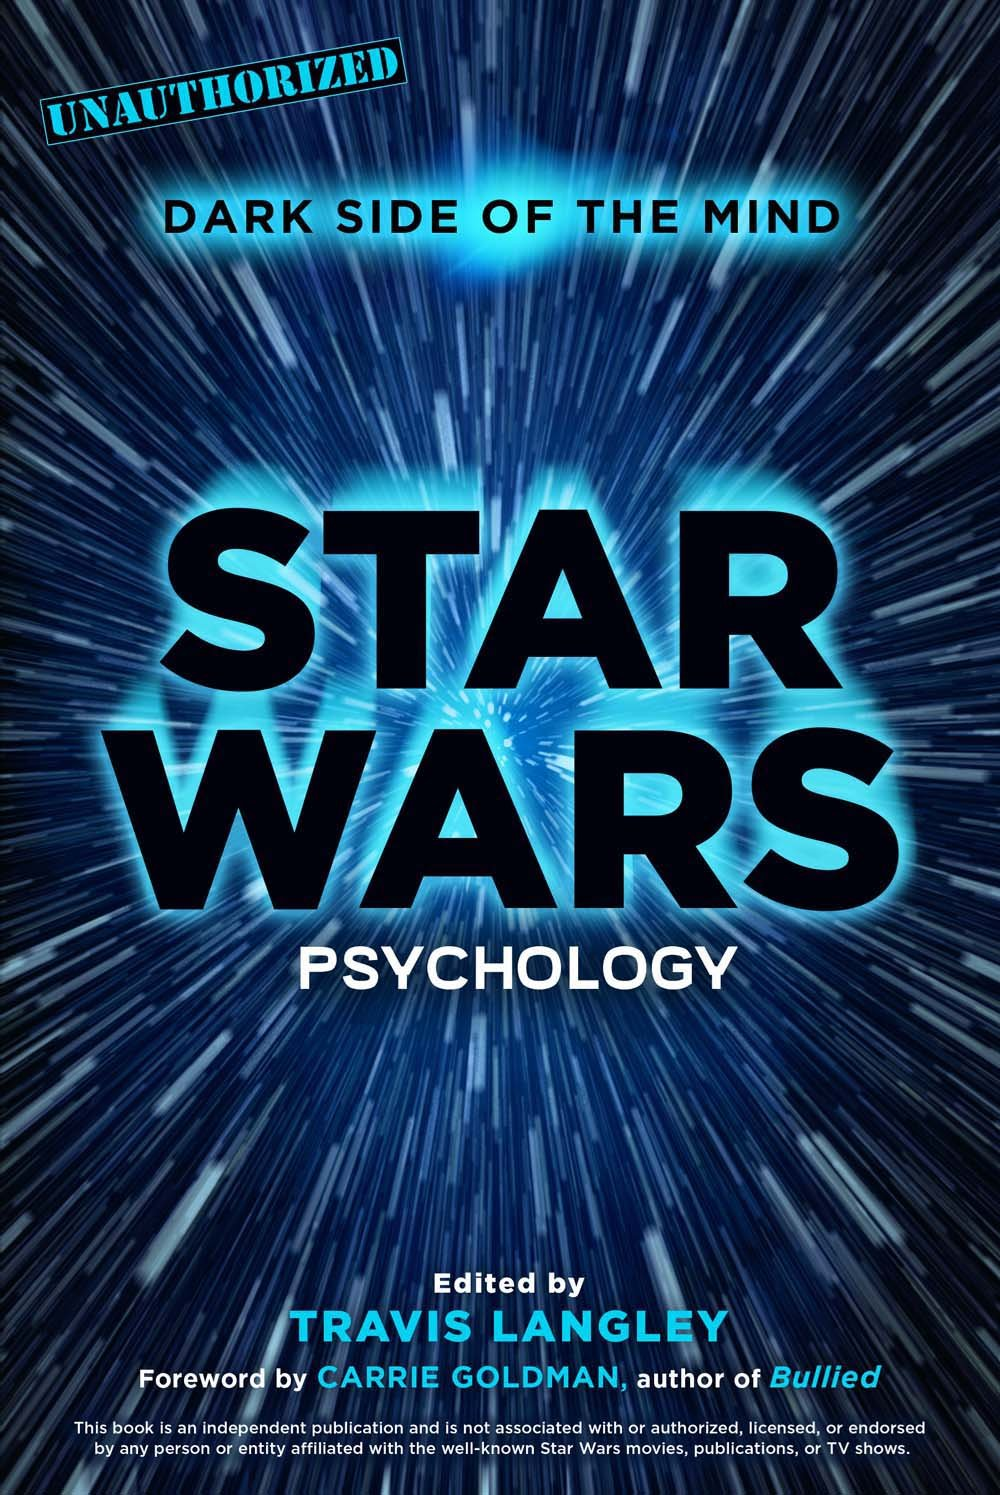 com star wars psychology dark side of the mind com star wars psychology dark side of the mind 9781454917366 travis langley carrie goldman books